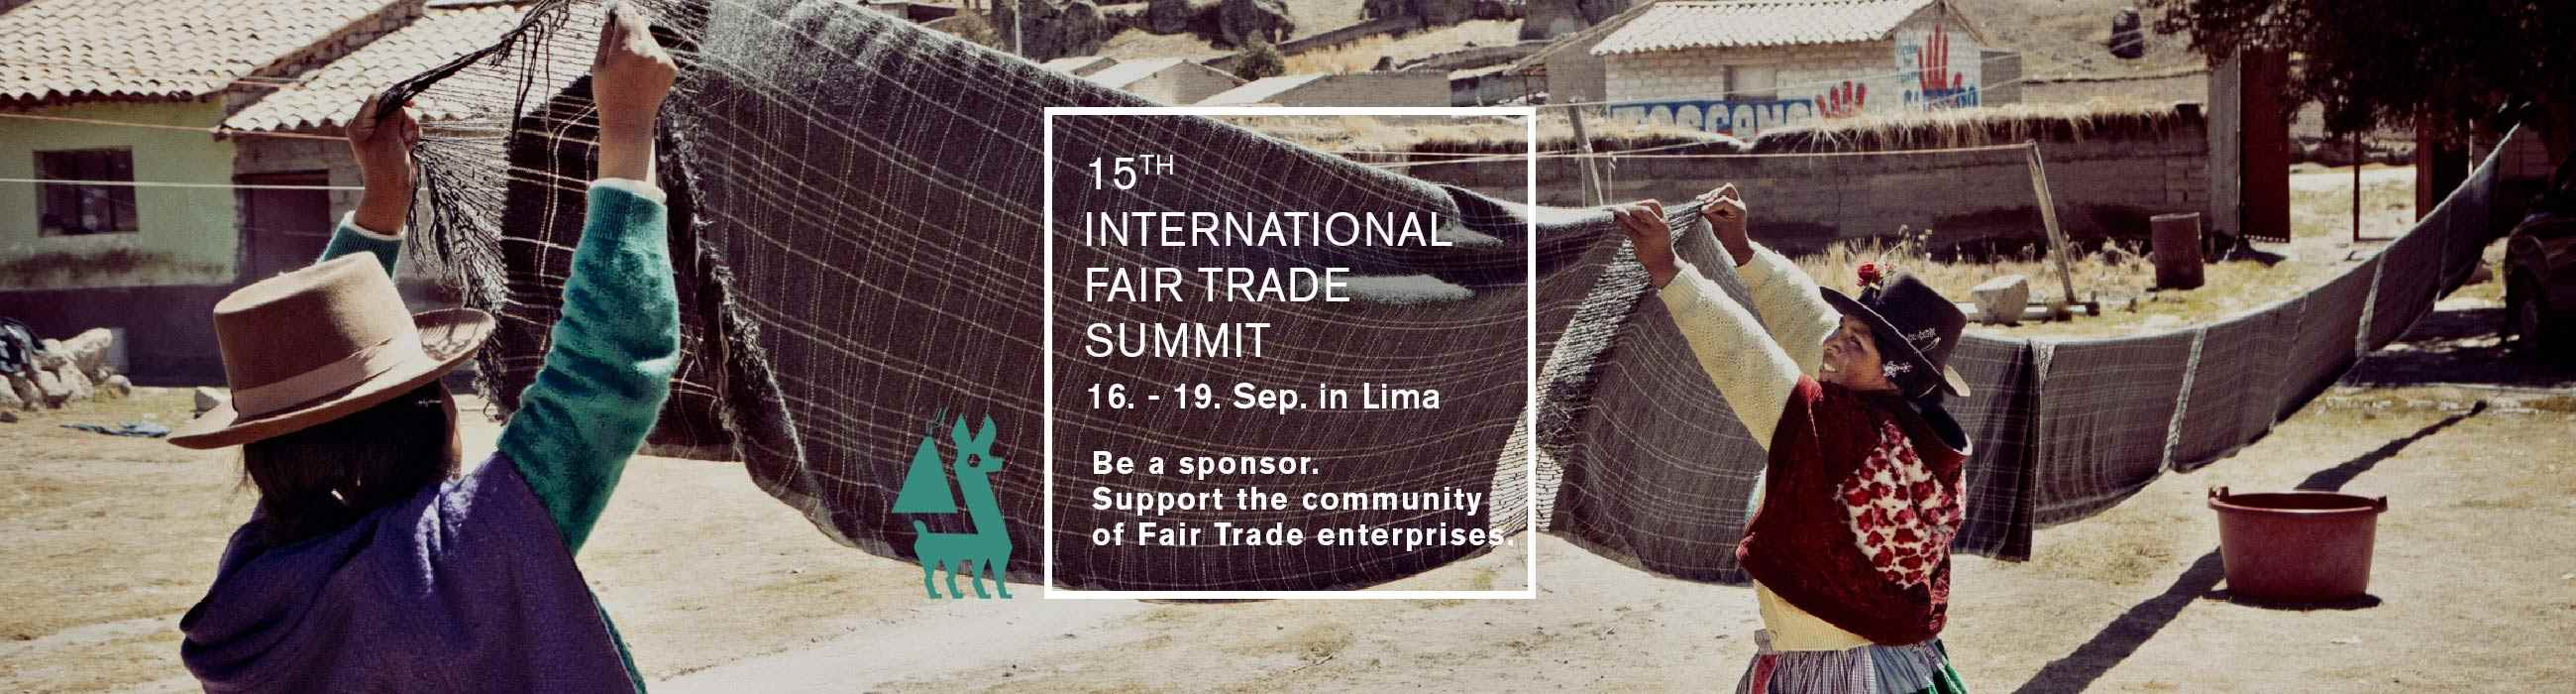 Fair Trade Summit Lima 16-19 Sep 2019